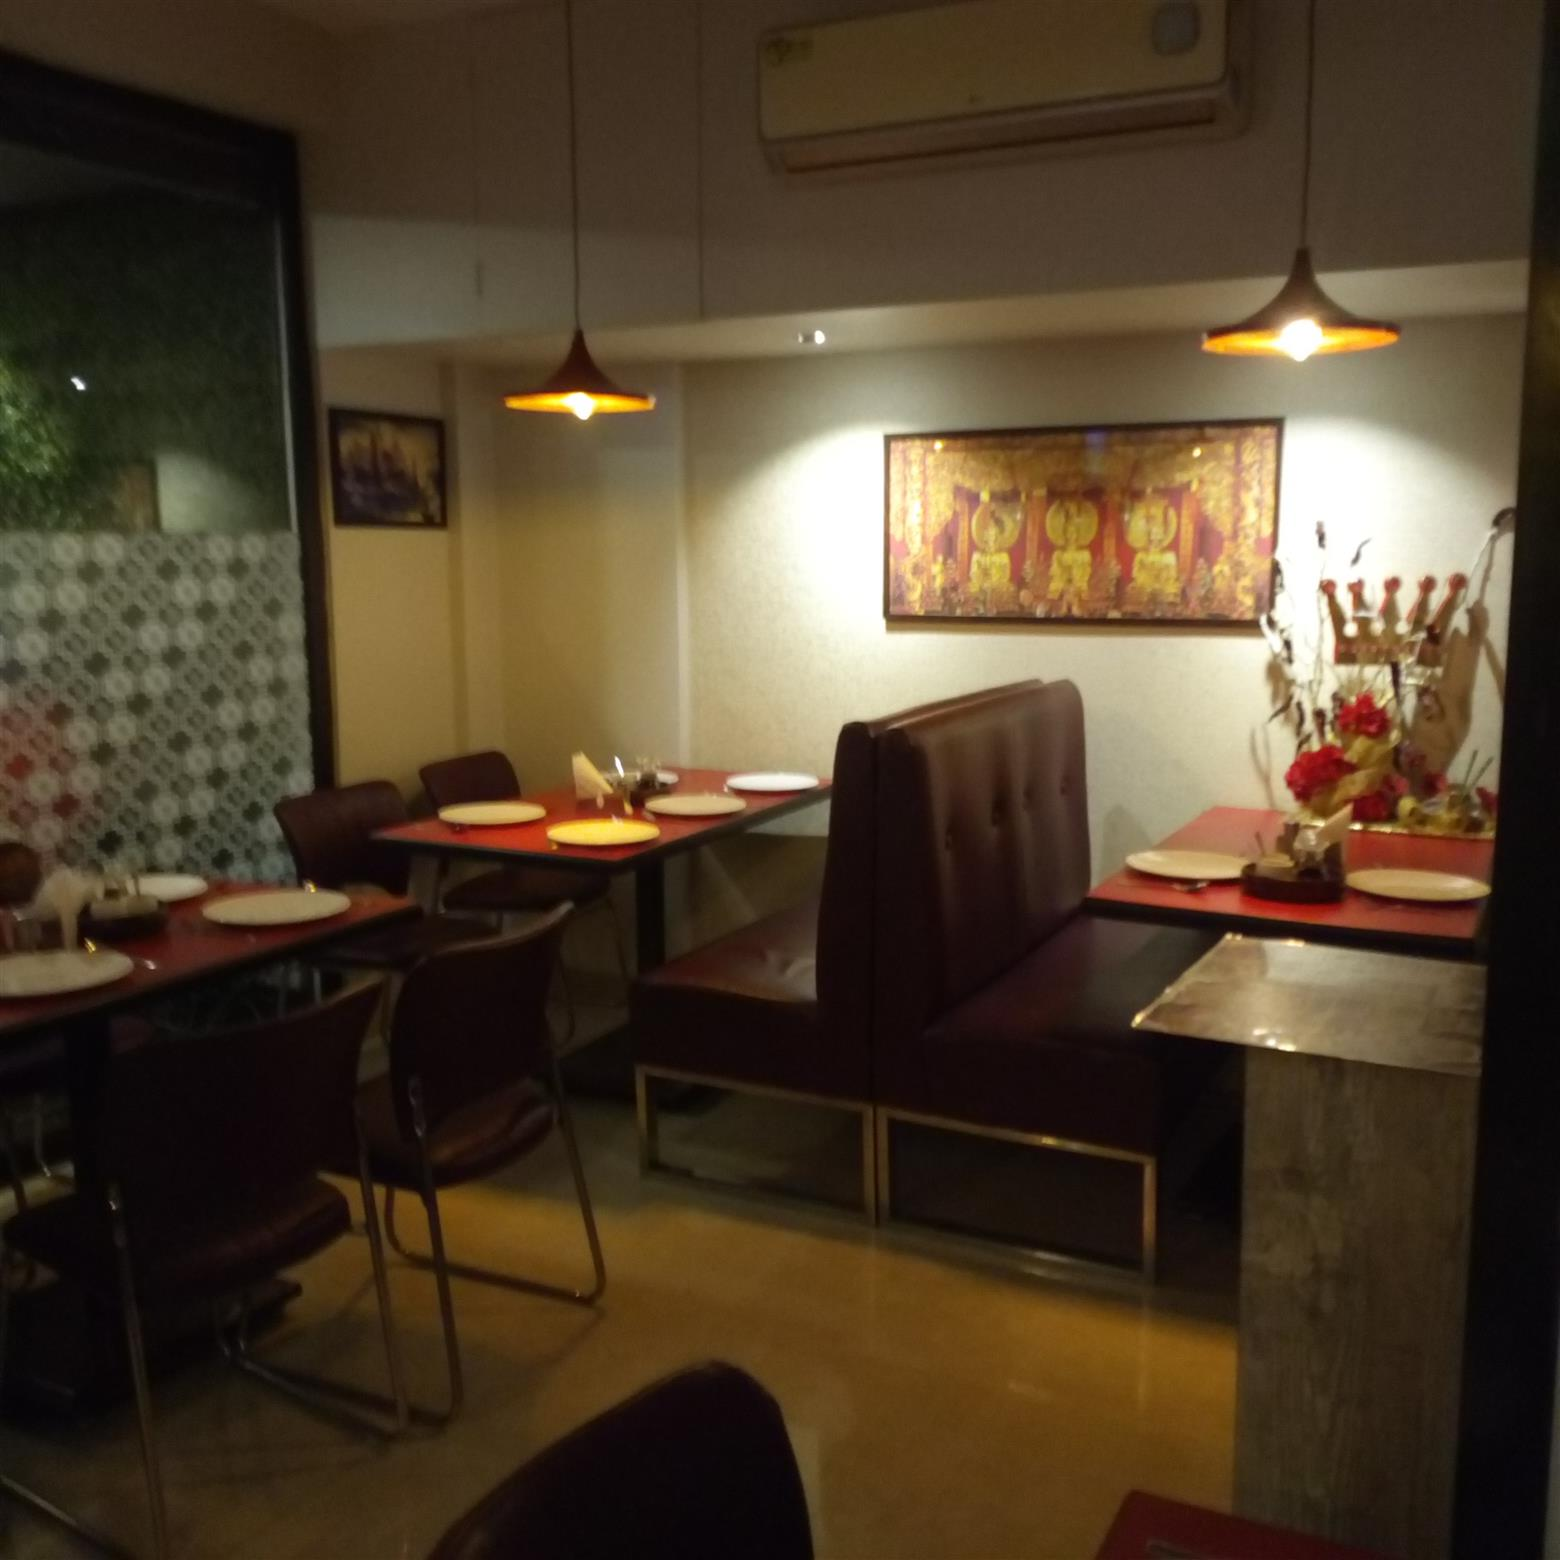 Asian Cuisine Restaurant Based in Juhu Mumbai Is Looking for an Investment